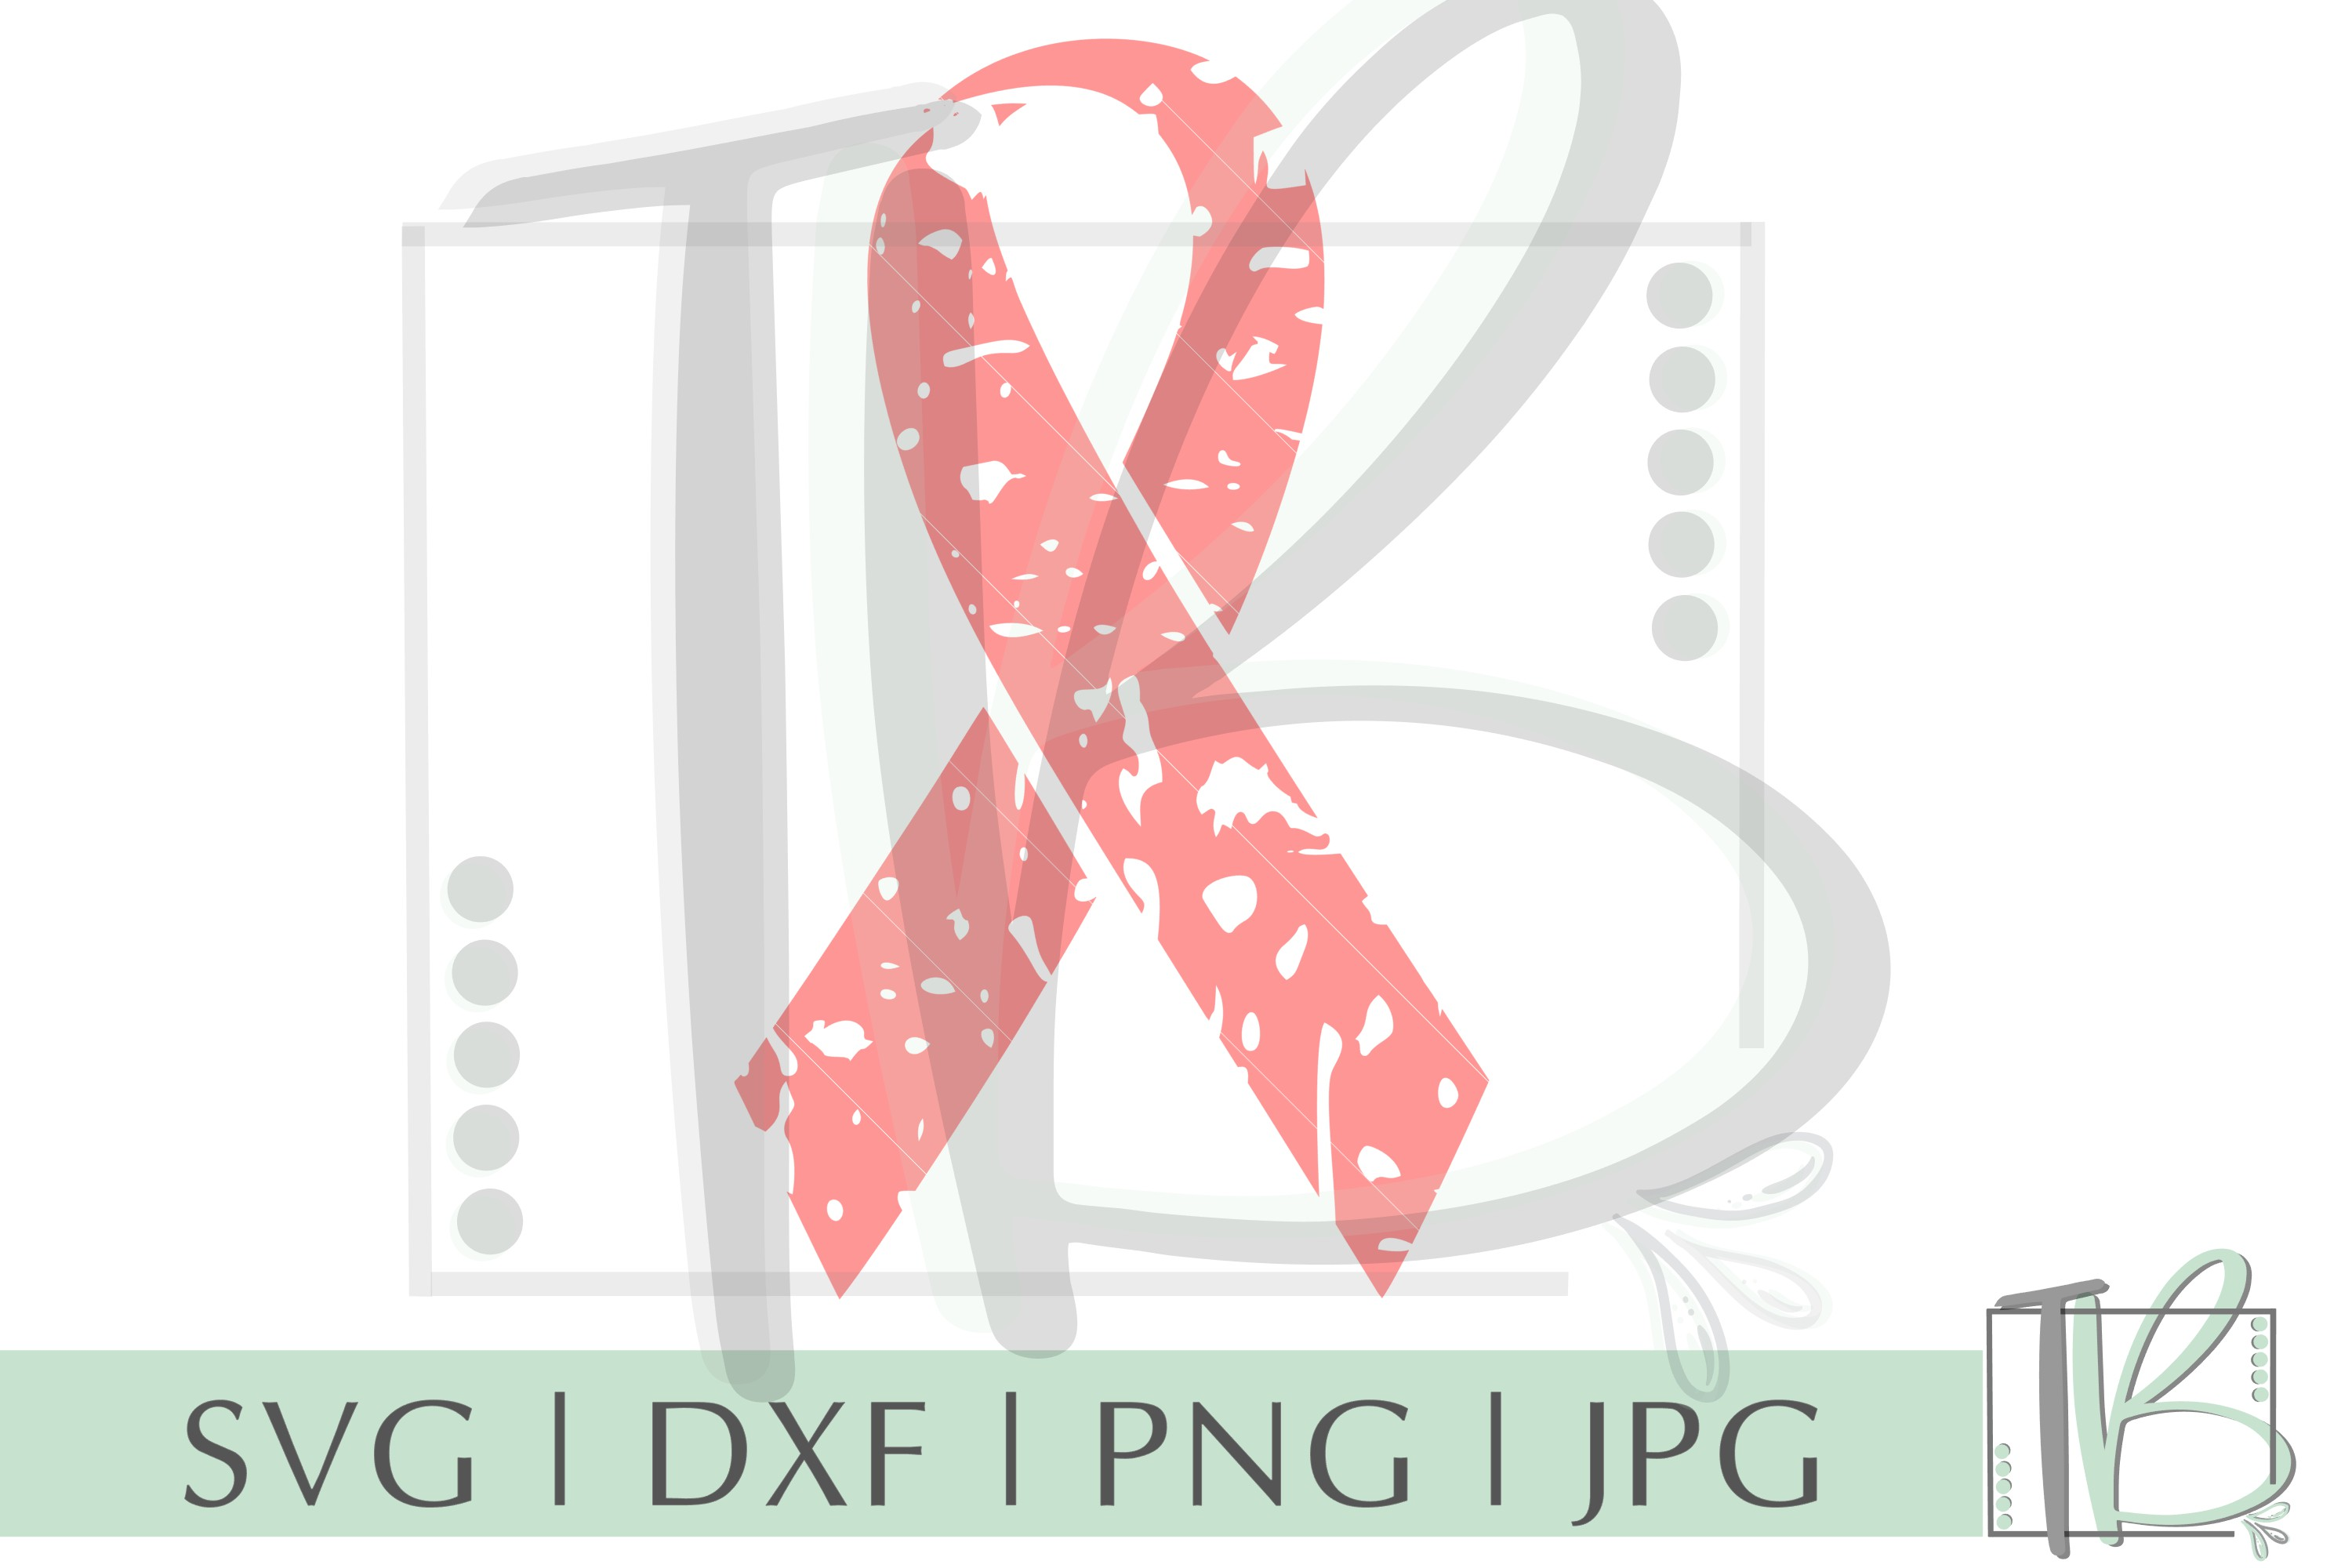 Grunge SVG, Breast Cancer SVG, Pink Ribbon SVG example image 2